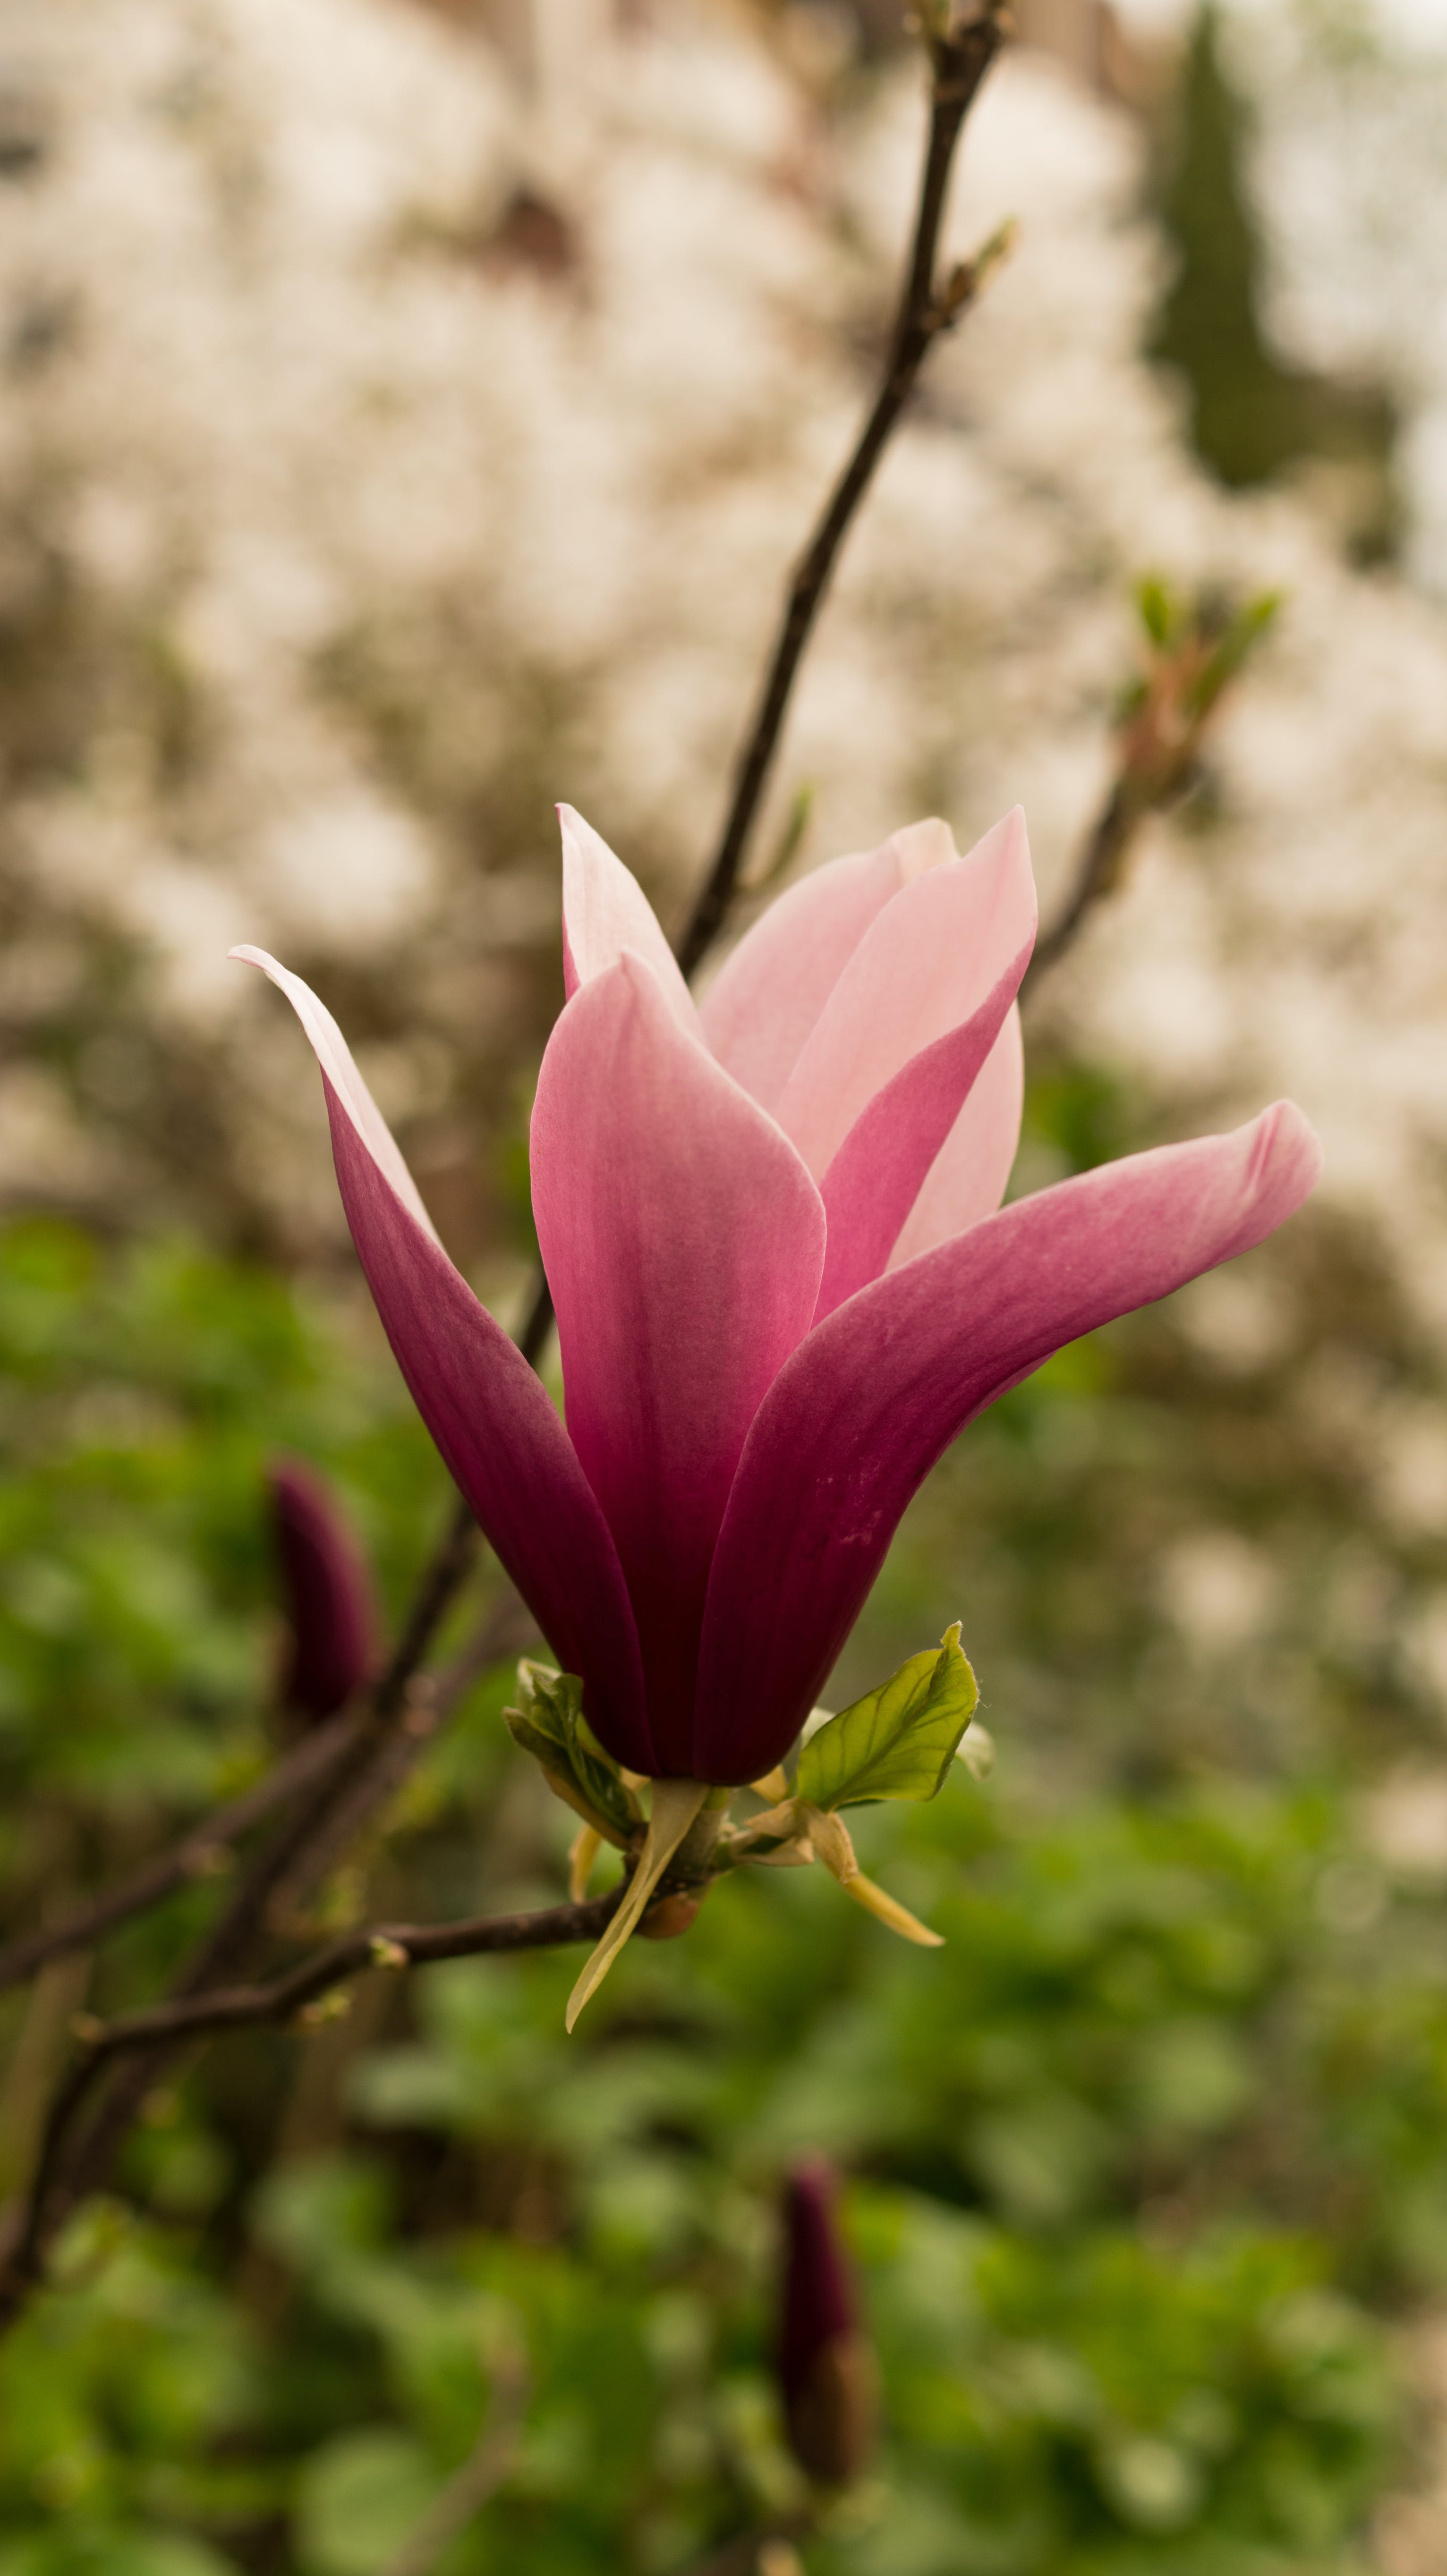 Close-up Photography of Pink Saucer Magnolia Flower